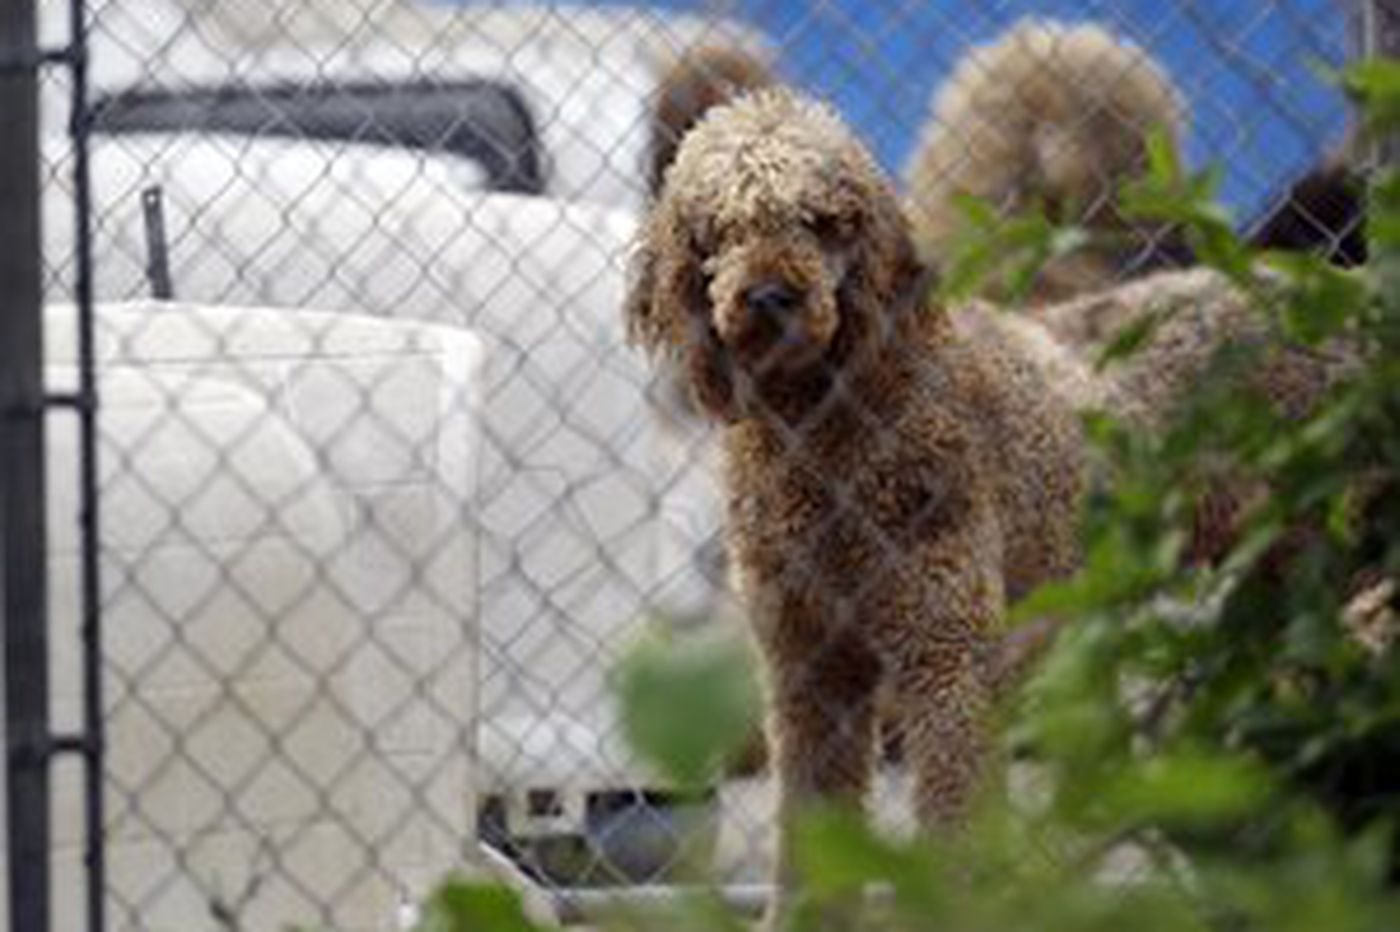 Lehigh County kennel owner charged, loses license